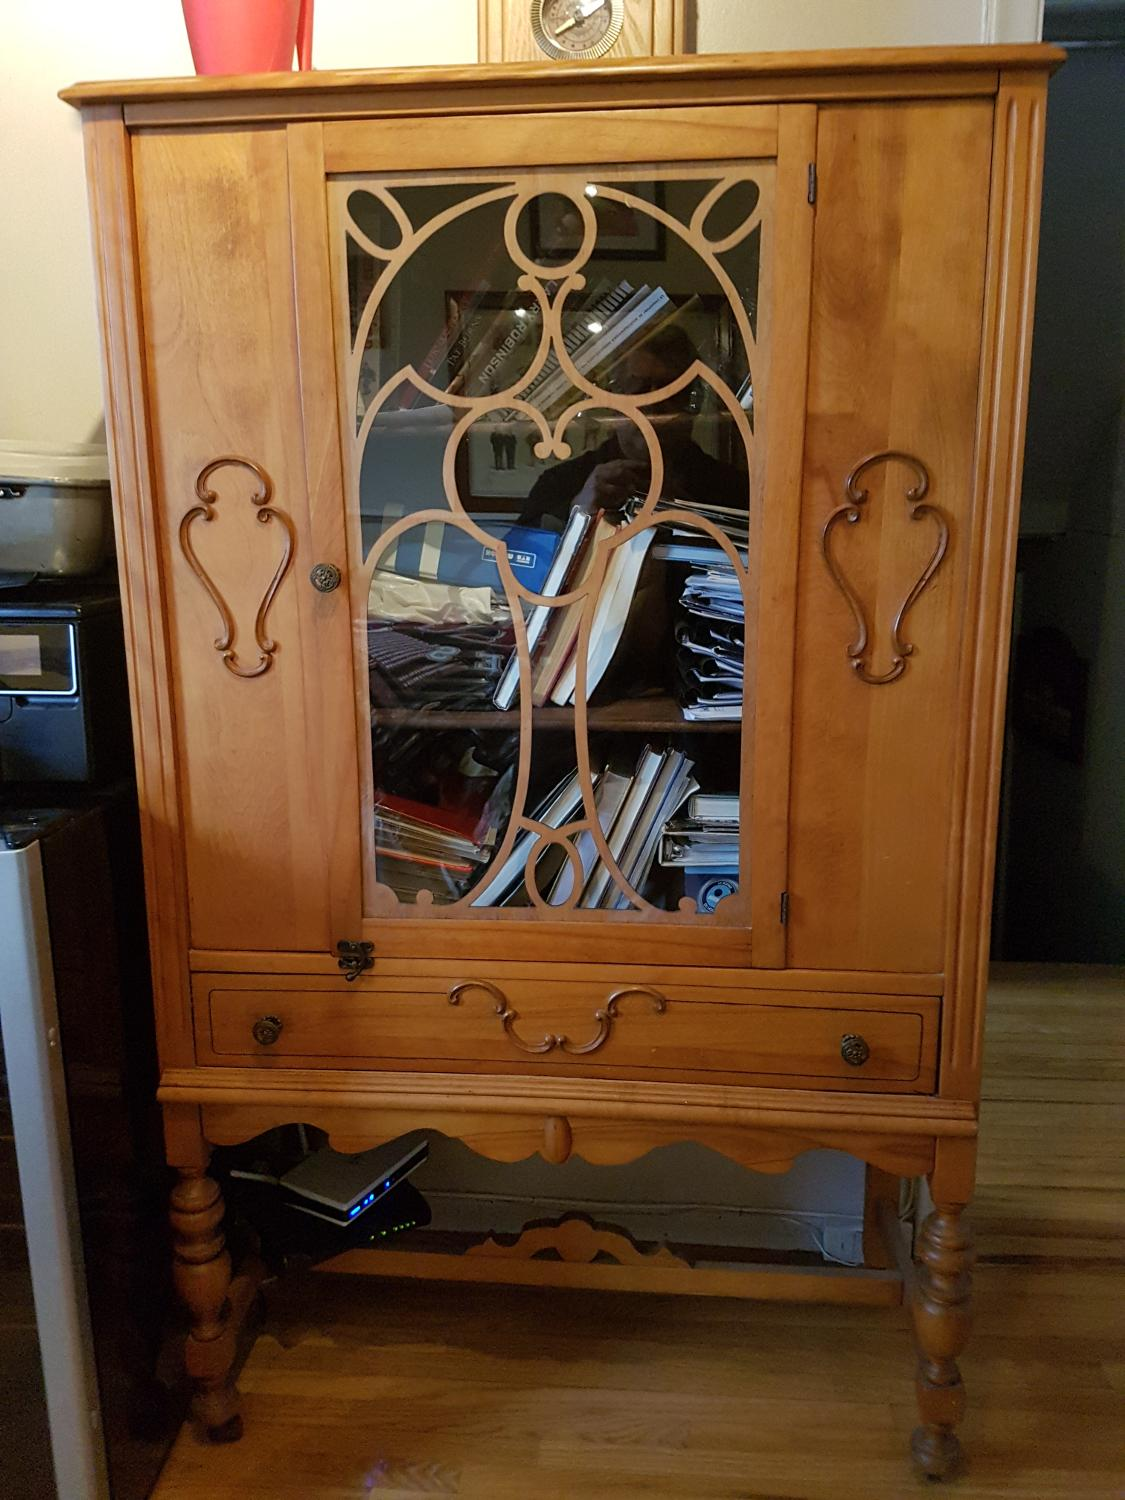 Best meuble antique for sale in vaudreuil quebec for 2018 for Meuble antique quebecois